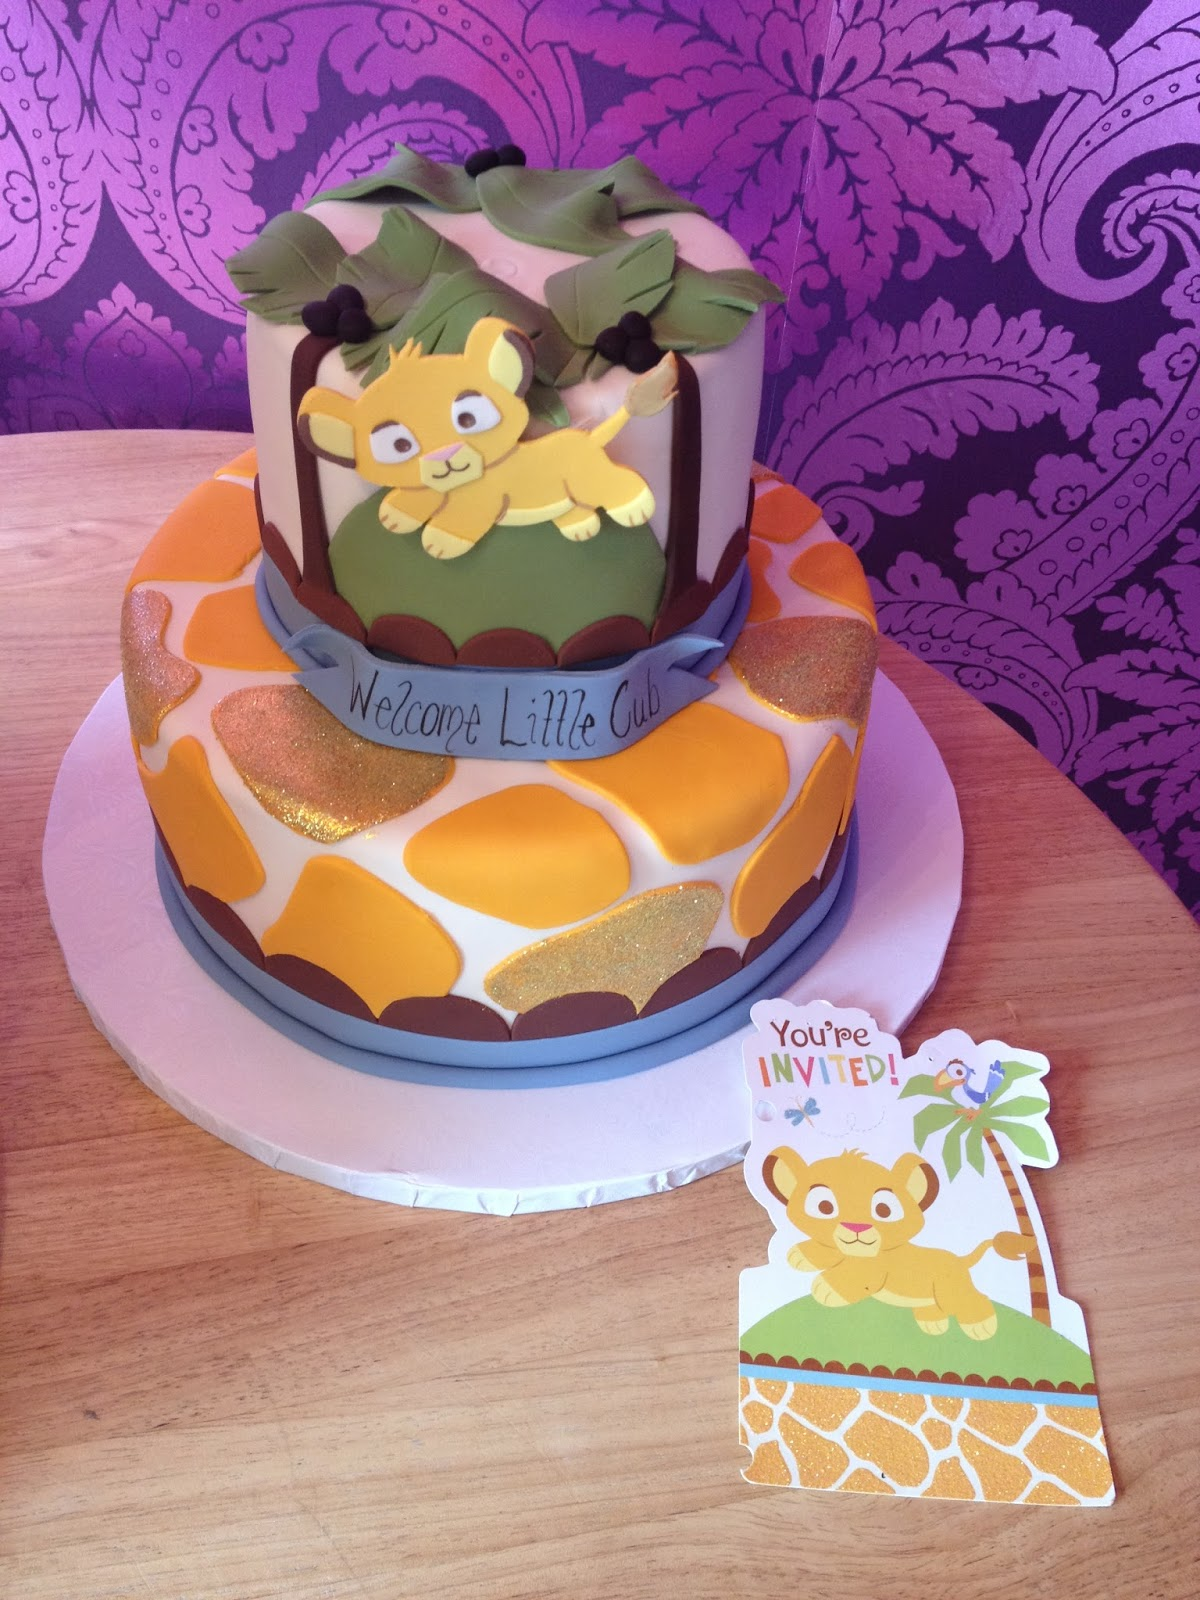 bake my day the cake boutique cake friday welcome little cub